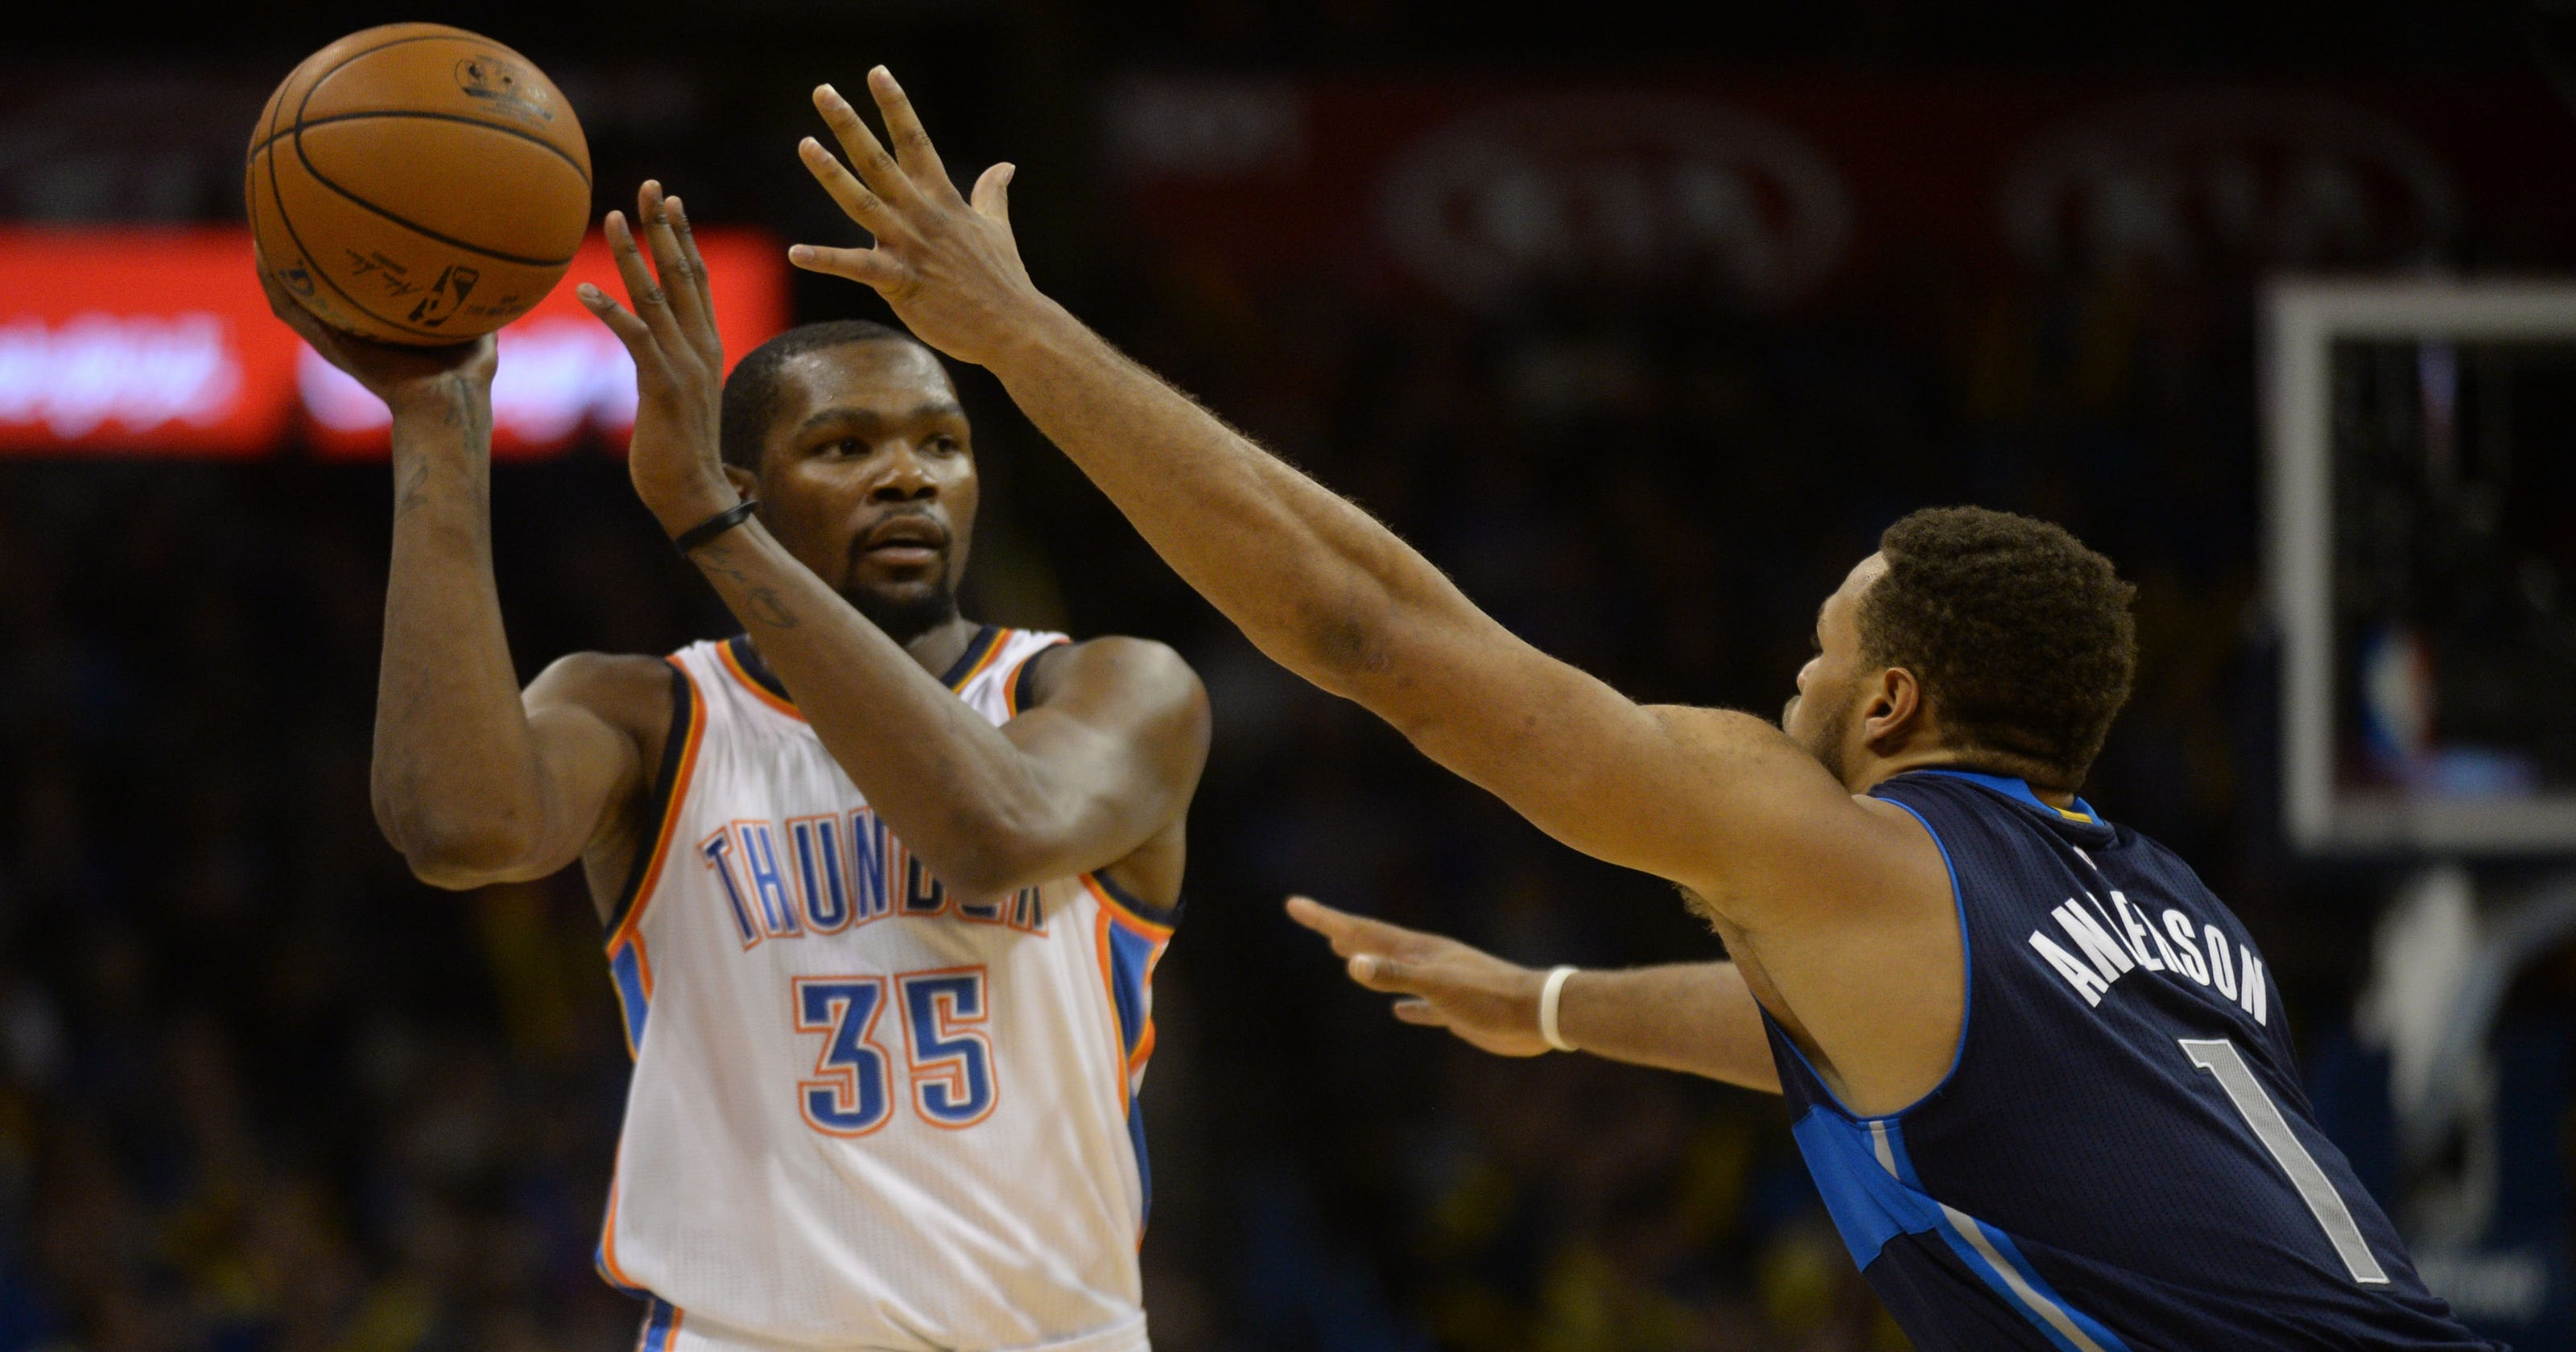 7aff9f3f94b0 Durant leads Thunder past Mavs after Westbrook ejected